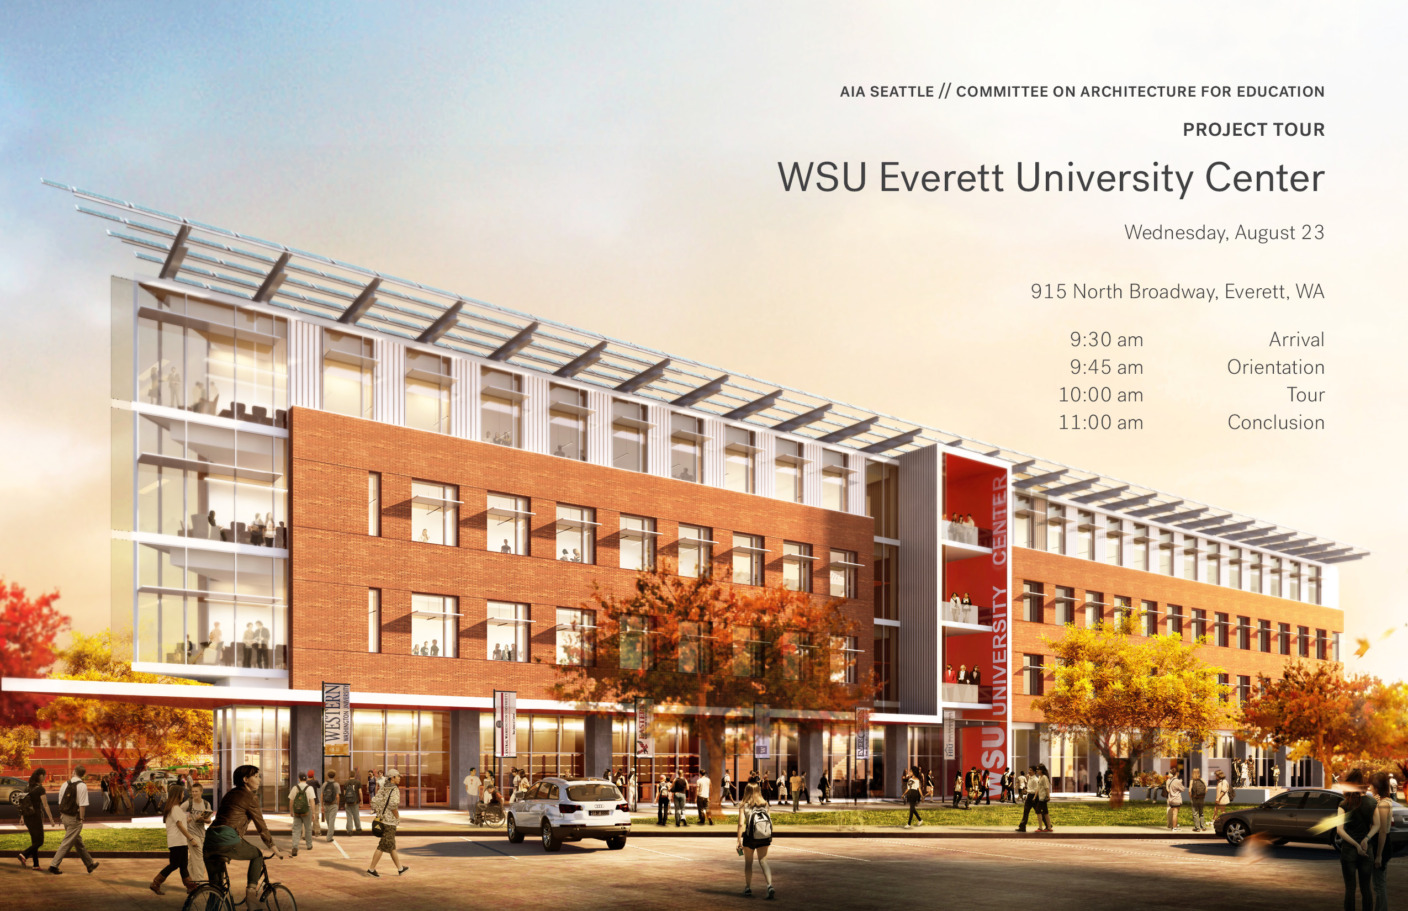 Join AIA Seattle Committee on Architecture for Education for a tour of WSU's new University Center in Everett!